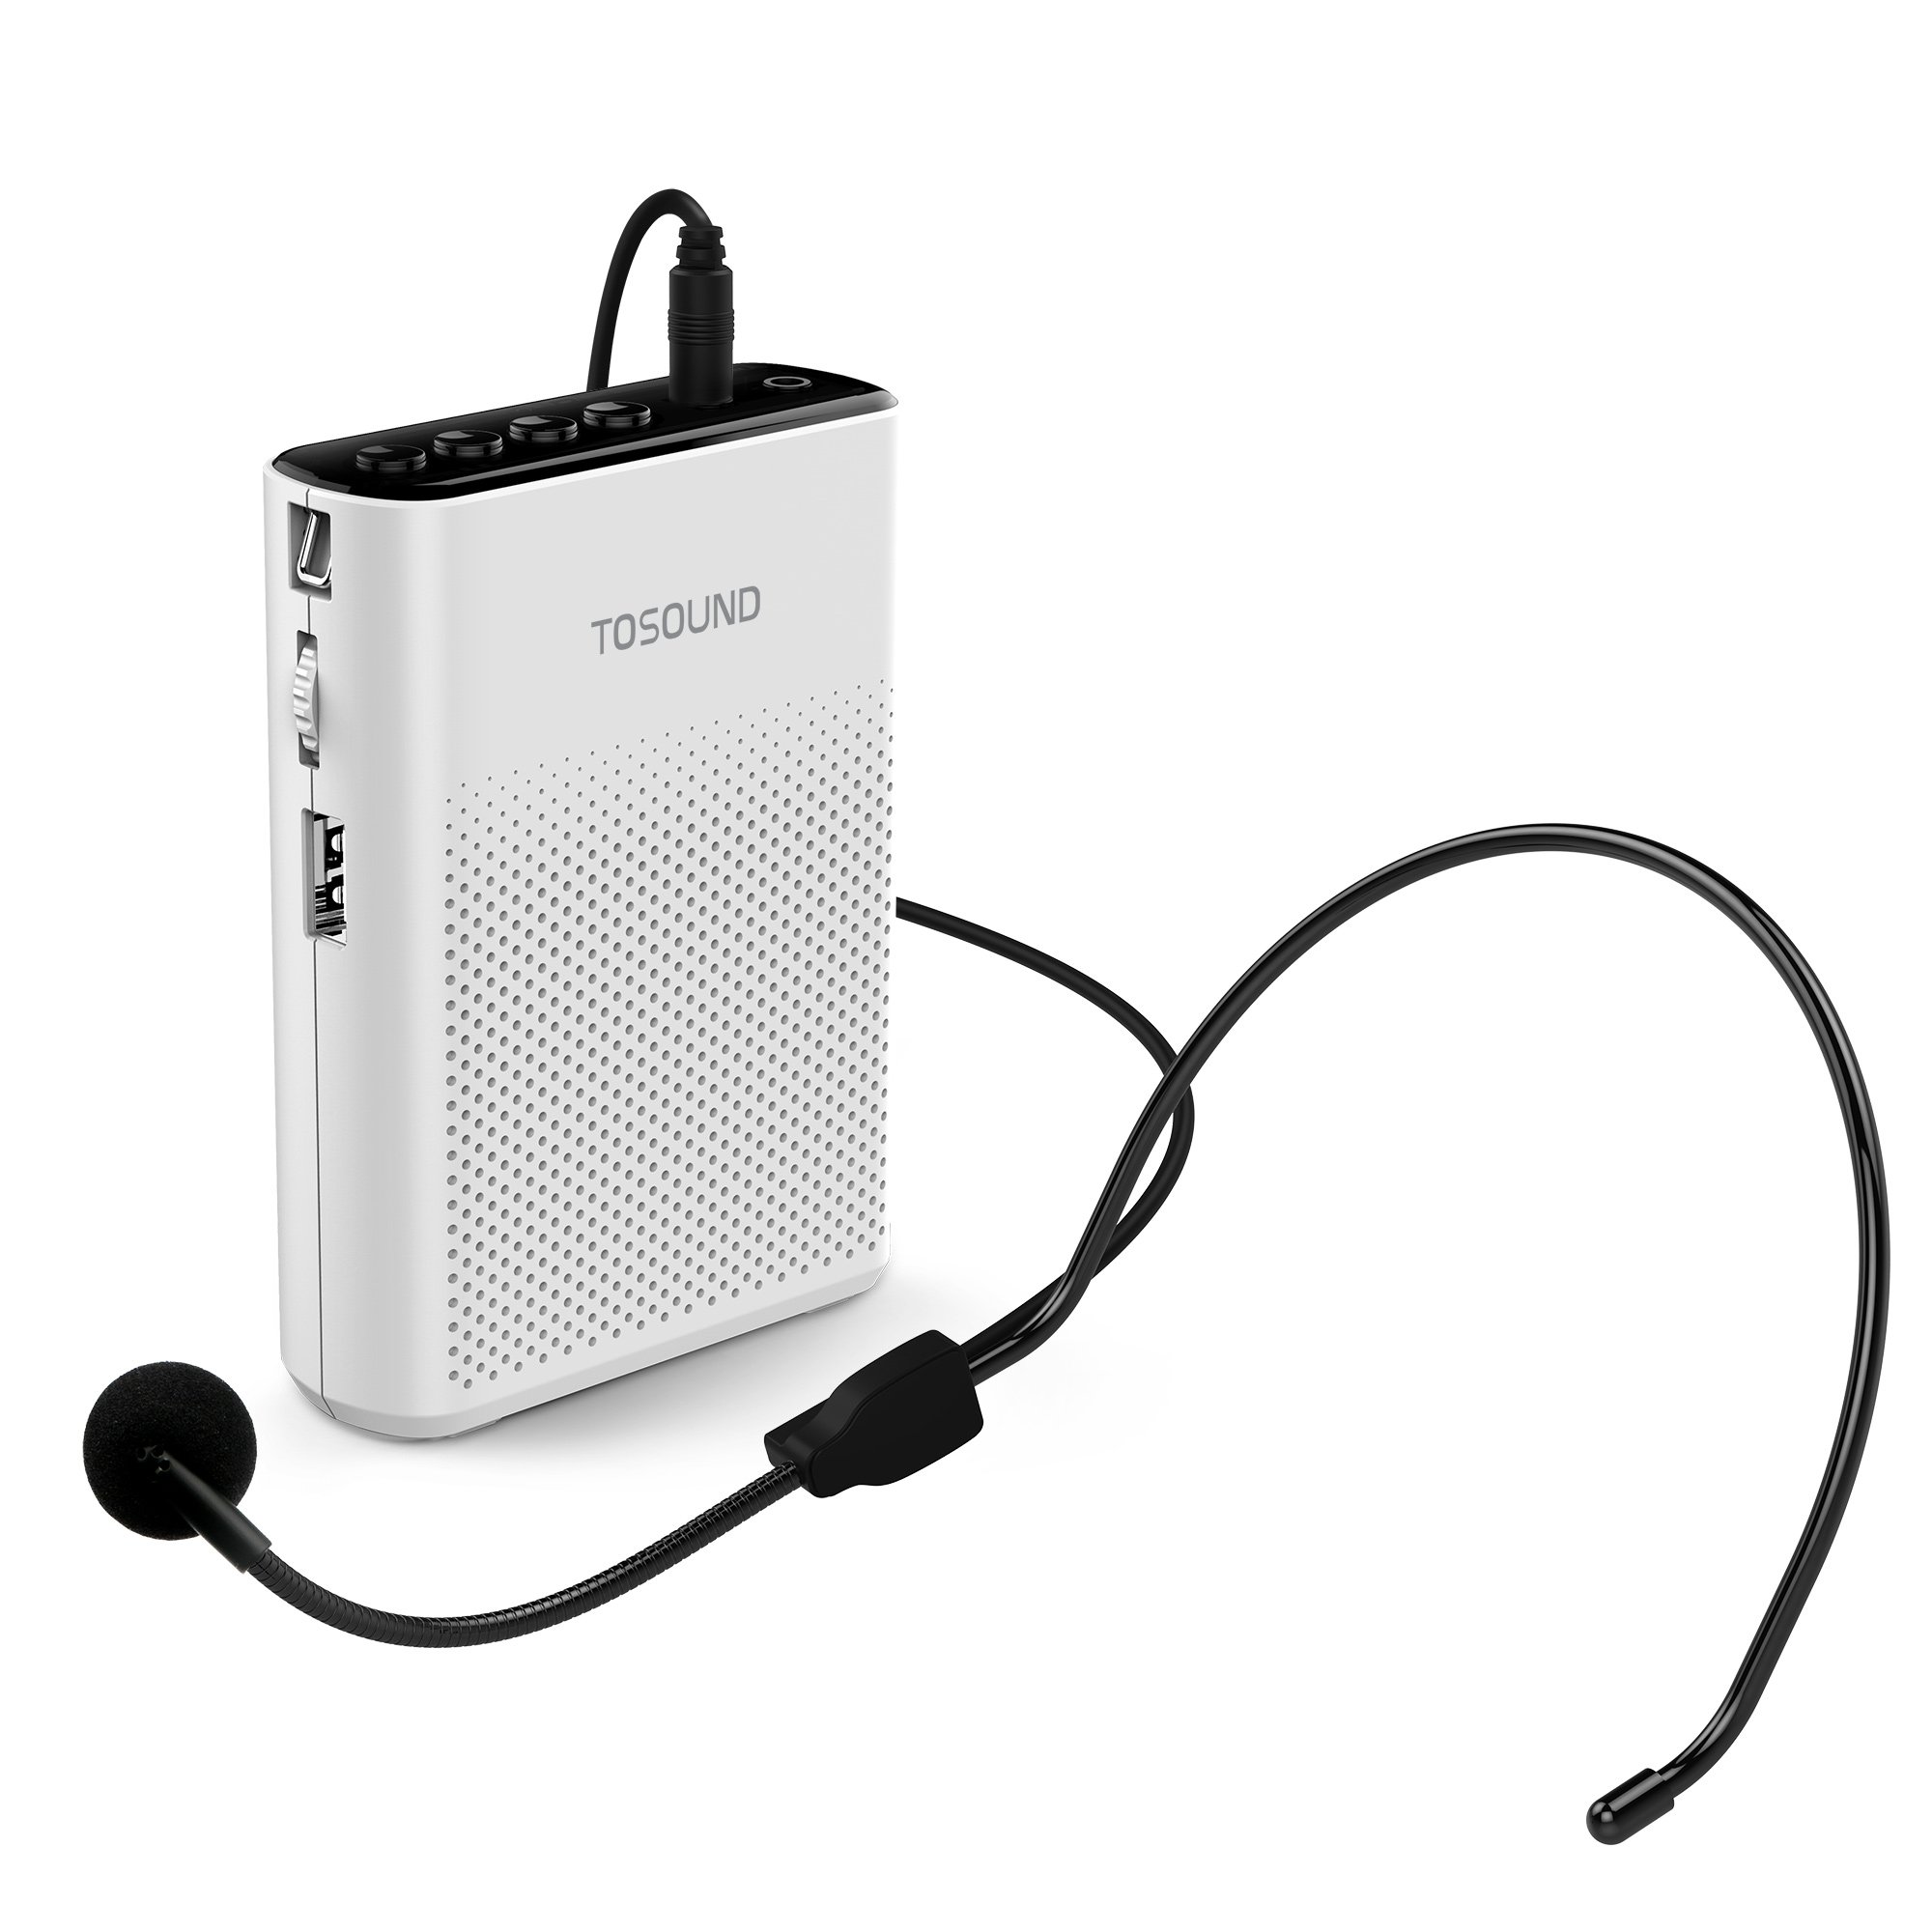 TOSOUND TS200 Mini Rechargeable Ultralight Portable Voice Amplifier, Support Waistband & Belt Clip Loudspeaker for Tour Guides, Teachers, Coaches, Presentations, Market promotion, Etc.